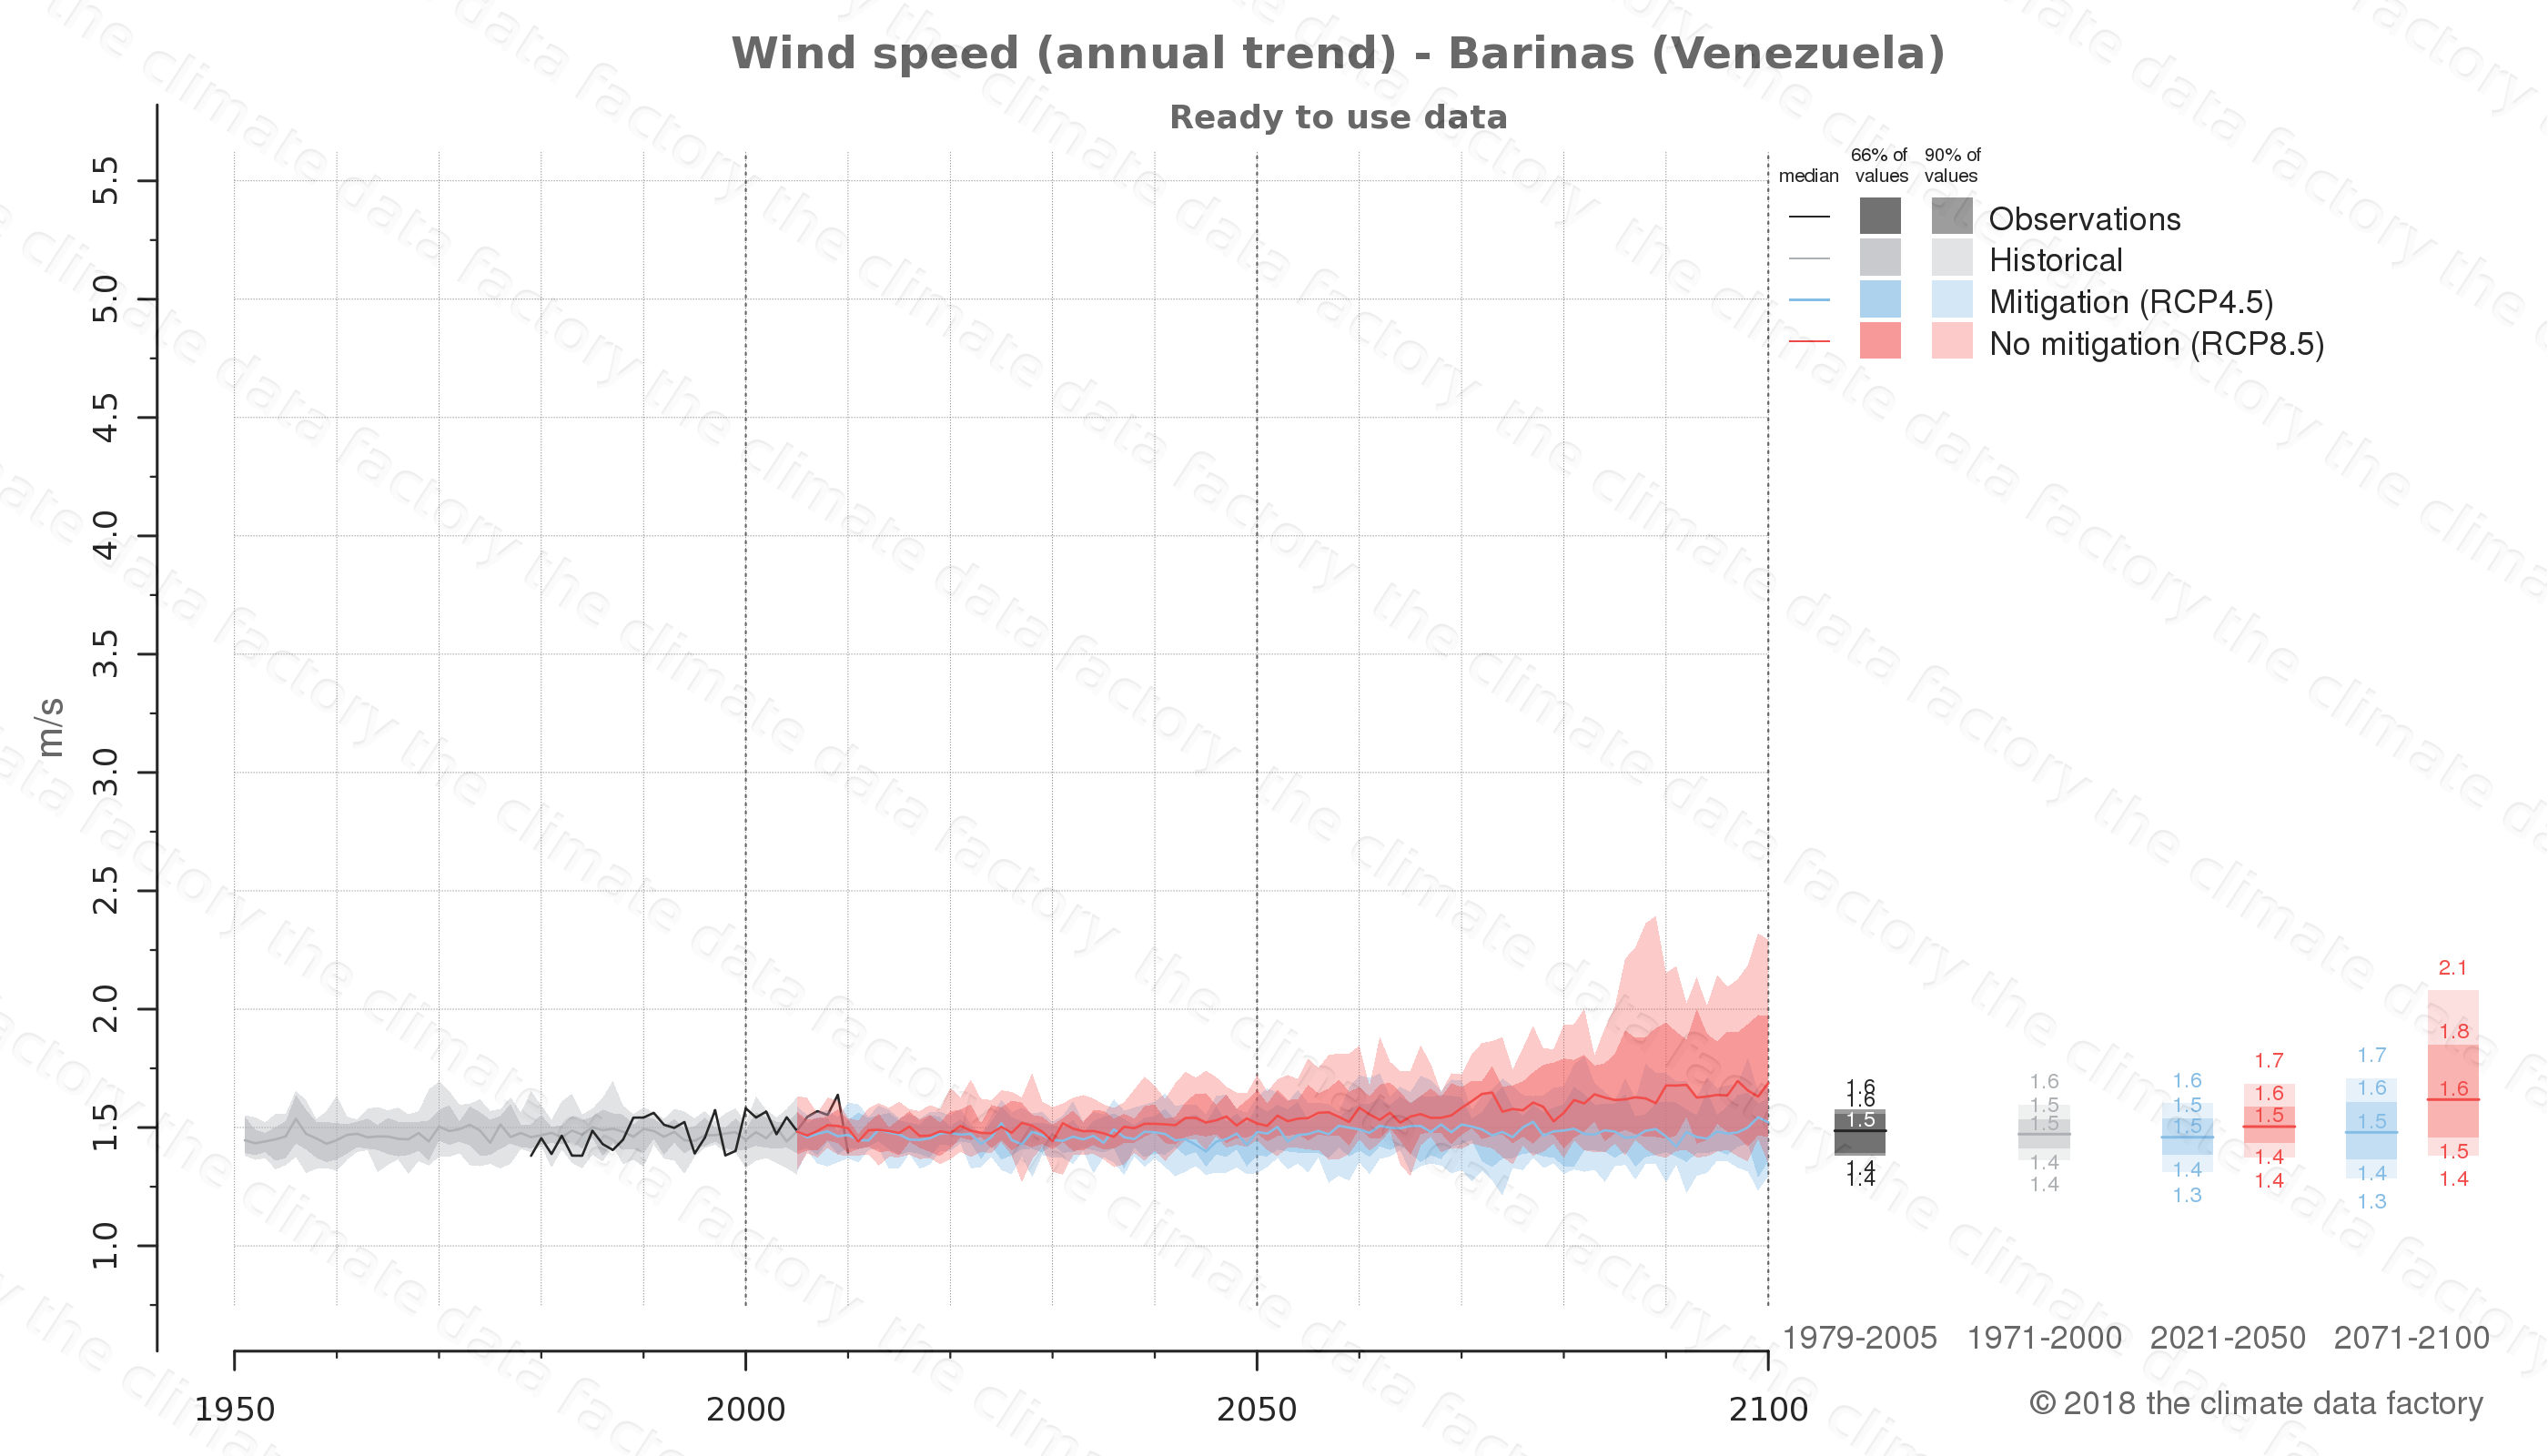 climate change data policy adaptation climate graph city data wind-speed barinas venezuela